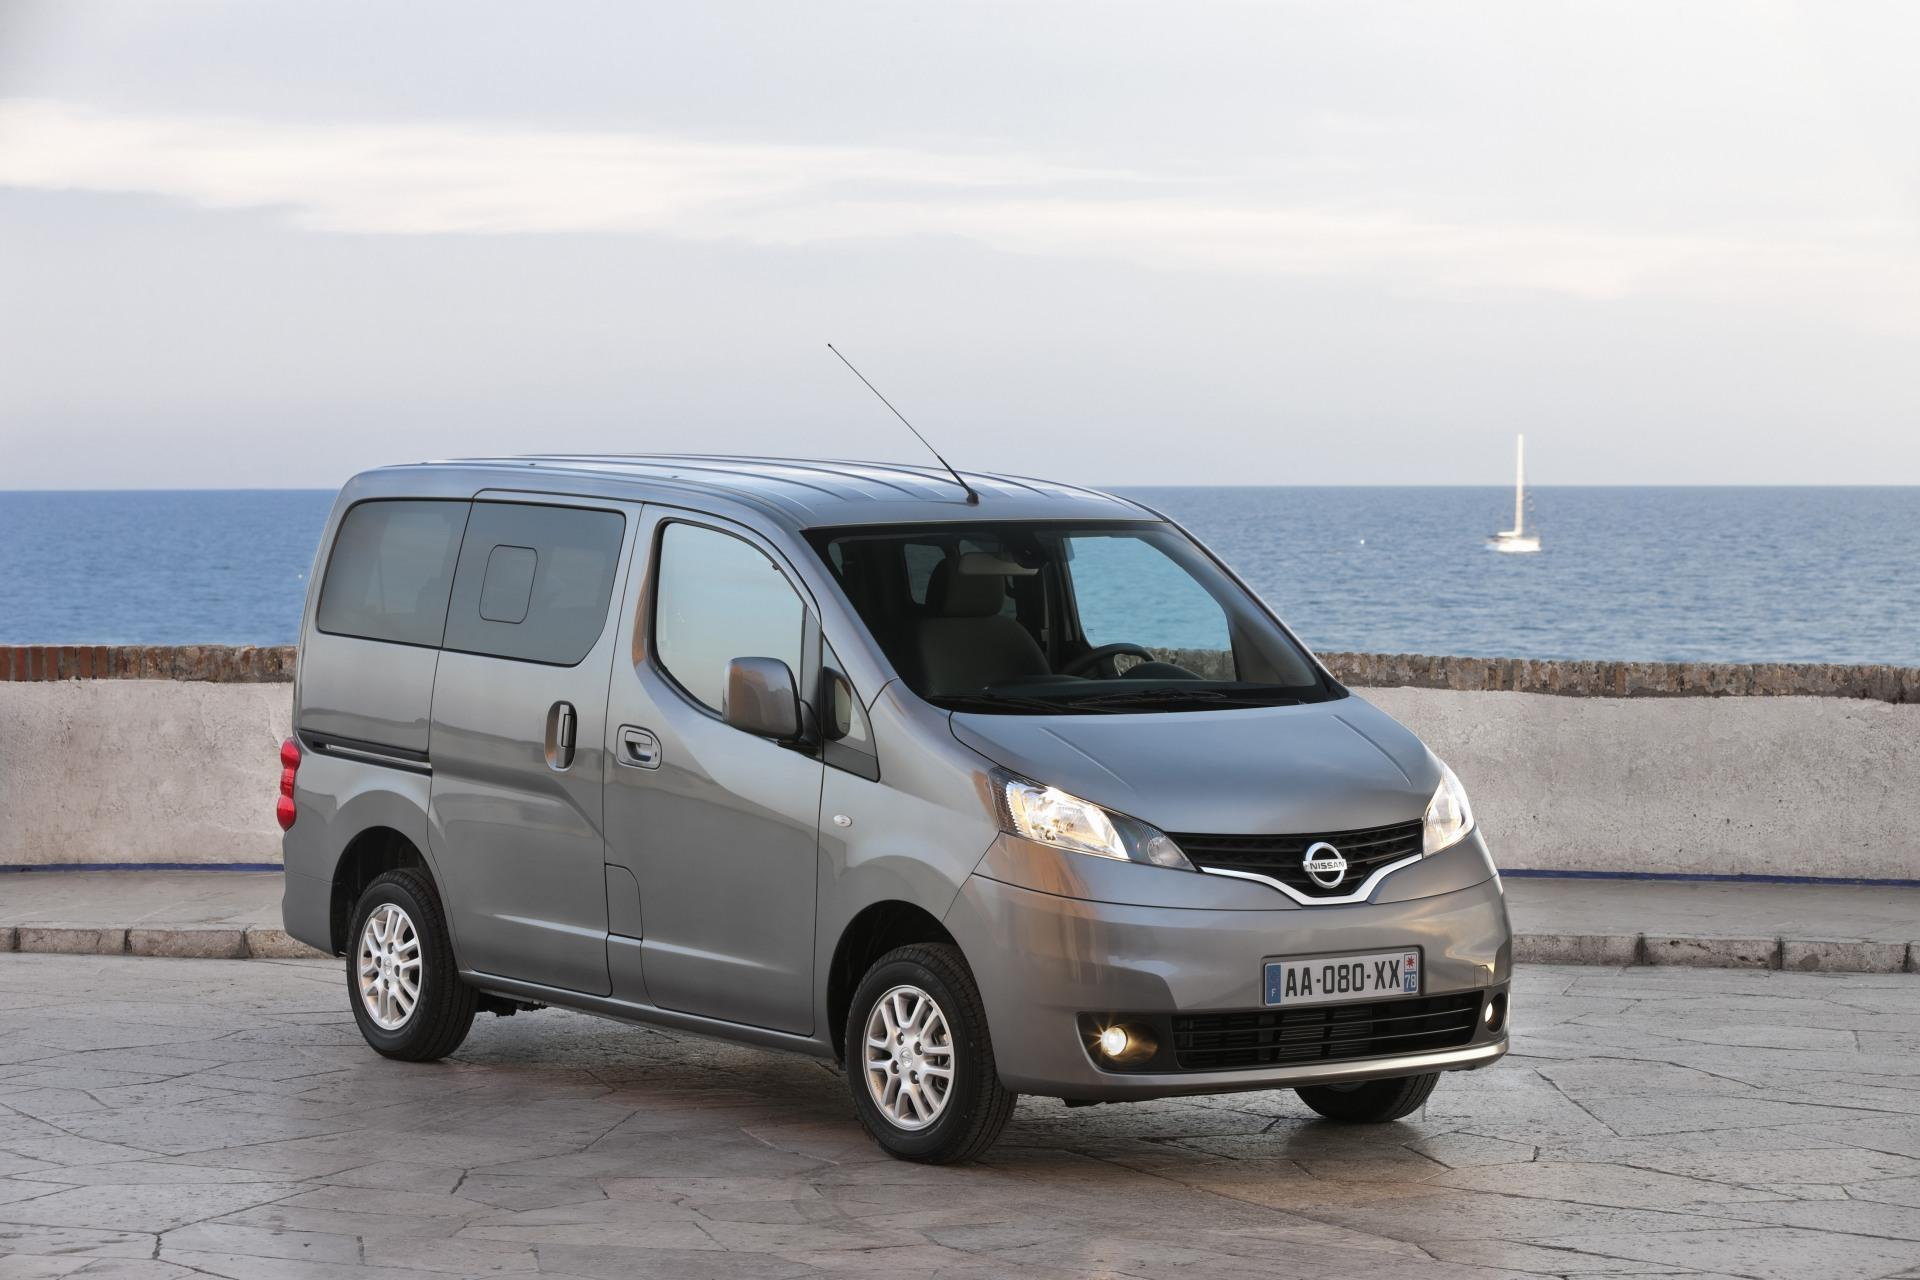 2011 nissan nv200 evalia news and information. Black Bedroom Furniture Sets. Home Design Ideas